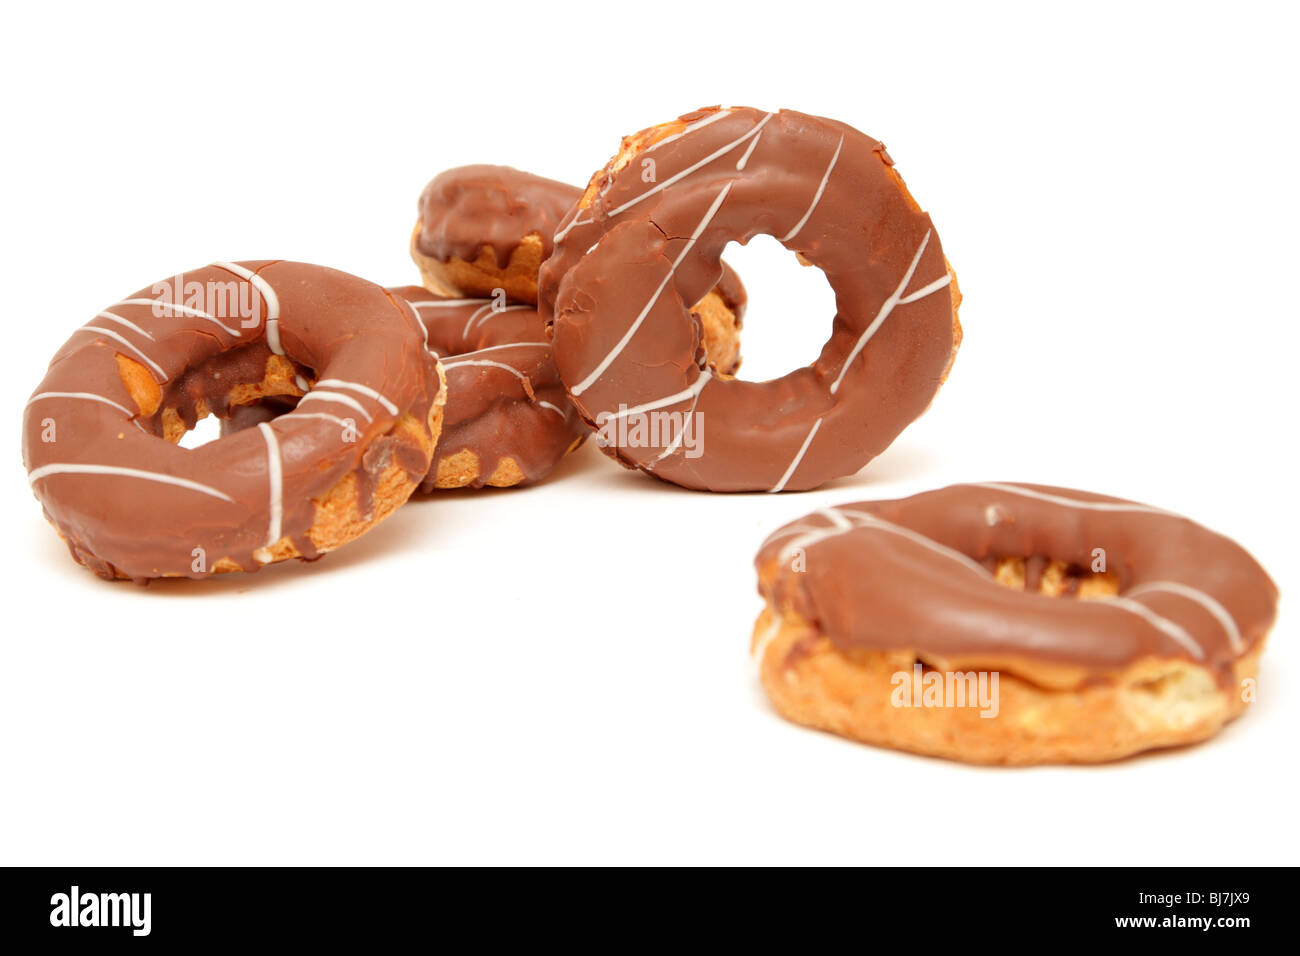 doughnuts over white background - Stock Image